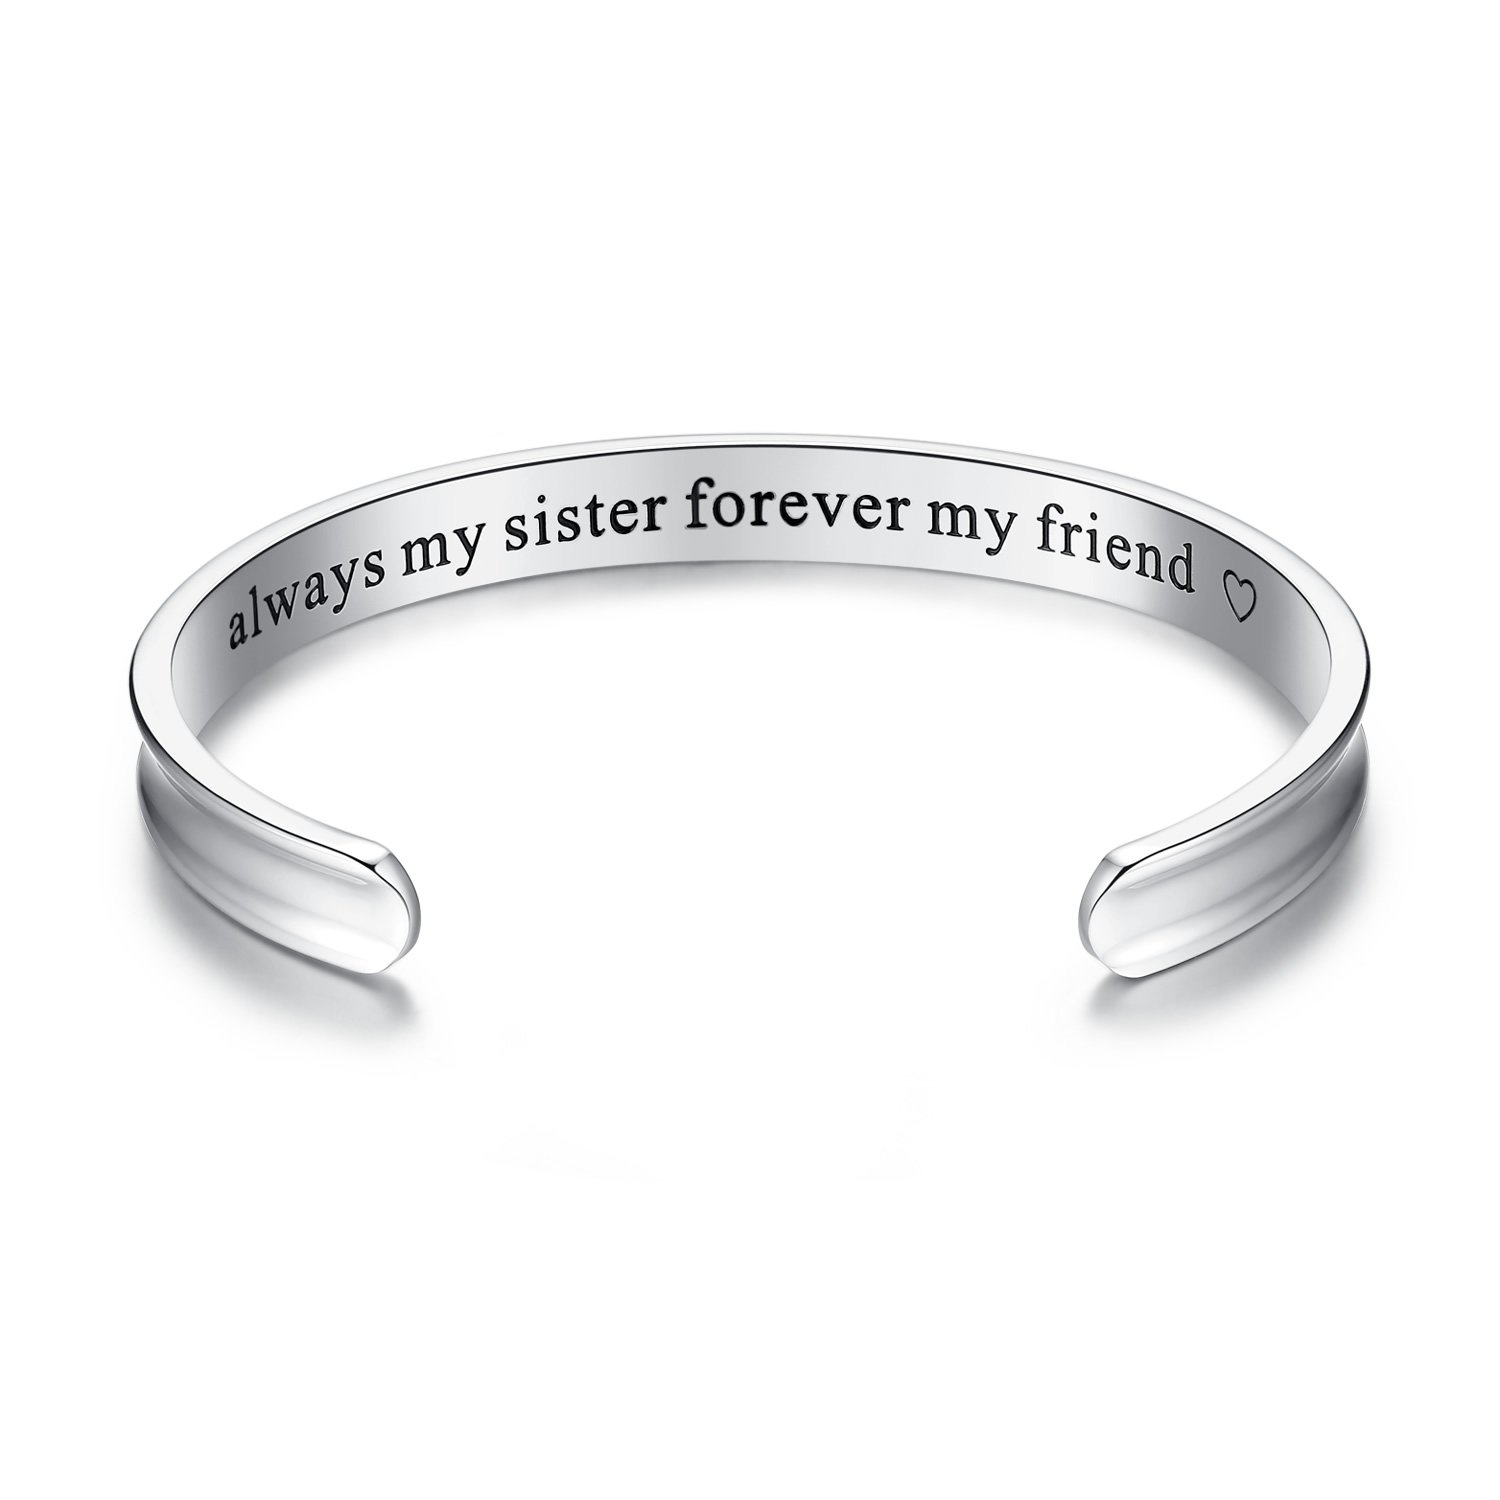 Amazon.com: \'Always my sister forever my friend\' Grooved Cuff Bangle ...